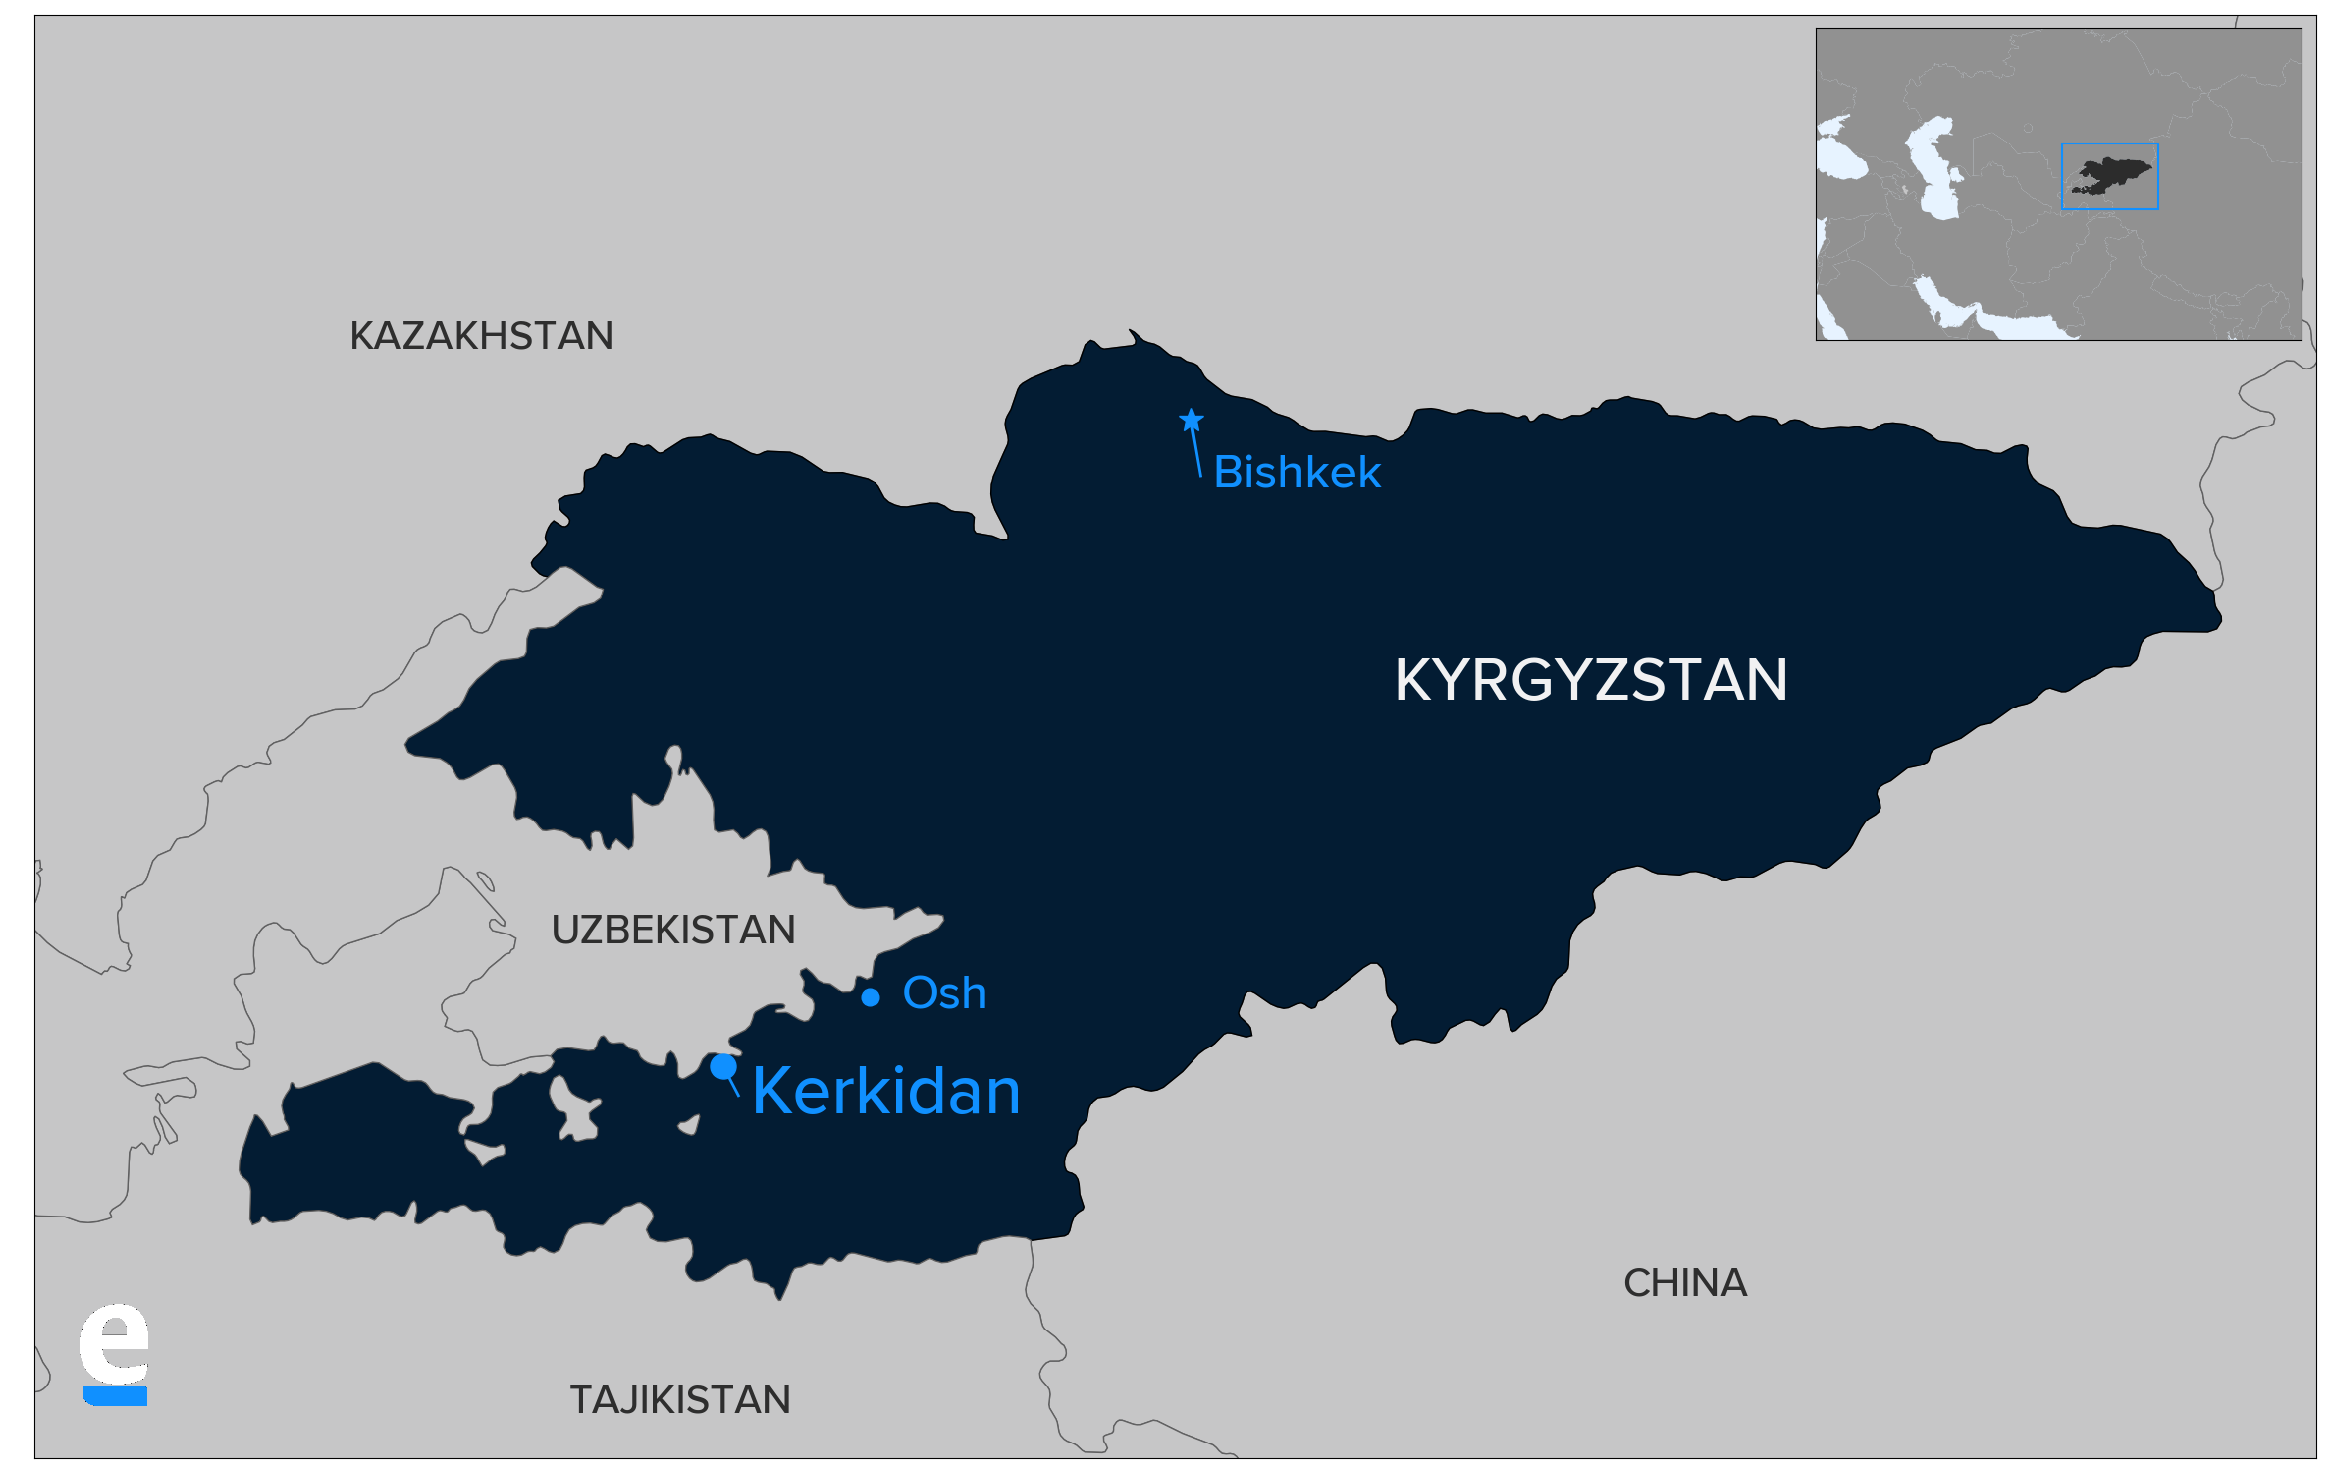 Kerkidan map